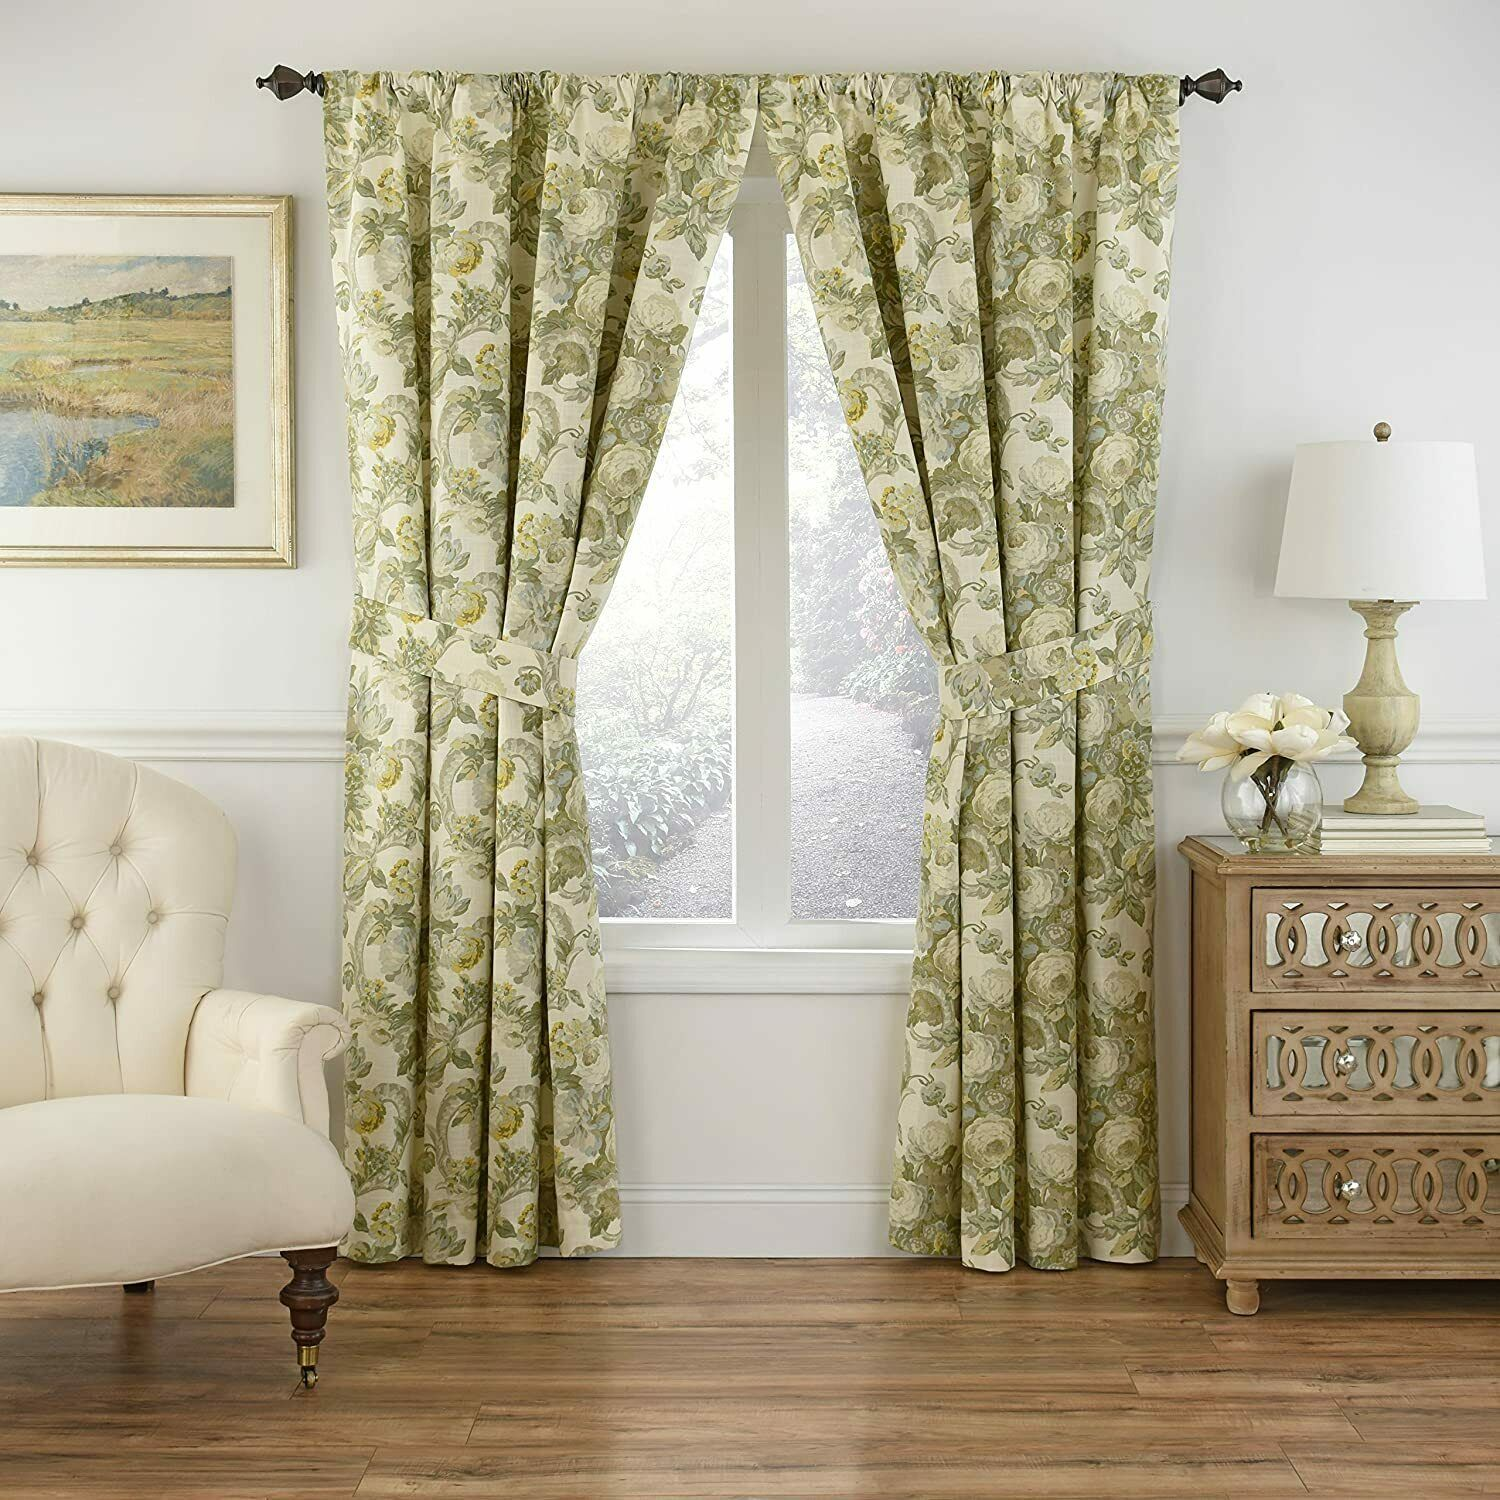 Primary image for Waverly Spring Bling Platinum Curtain Panel w Tieback 100% Cotton Floral 52x63